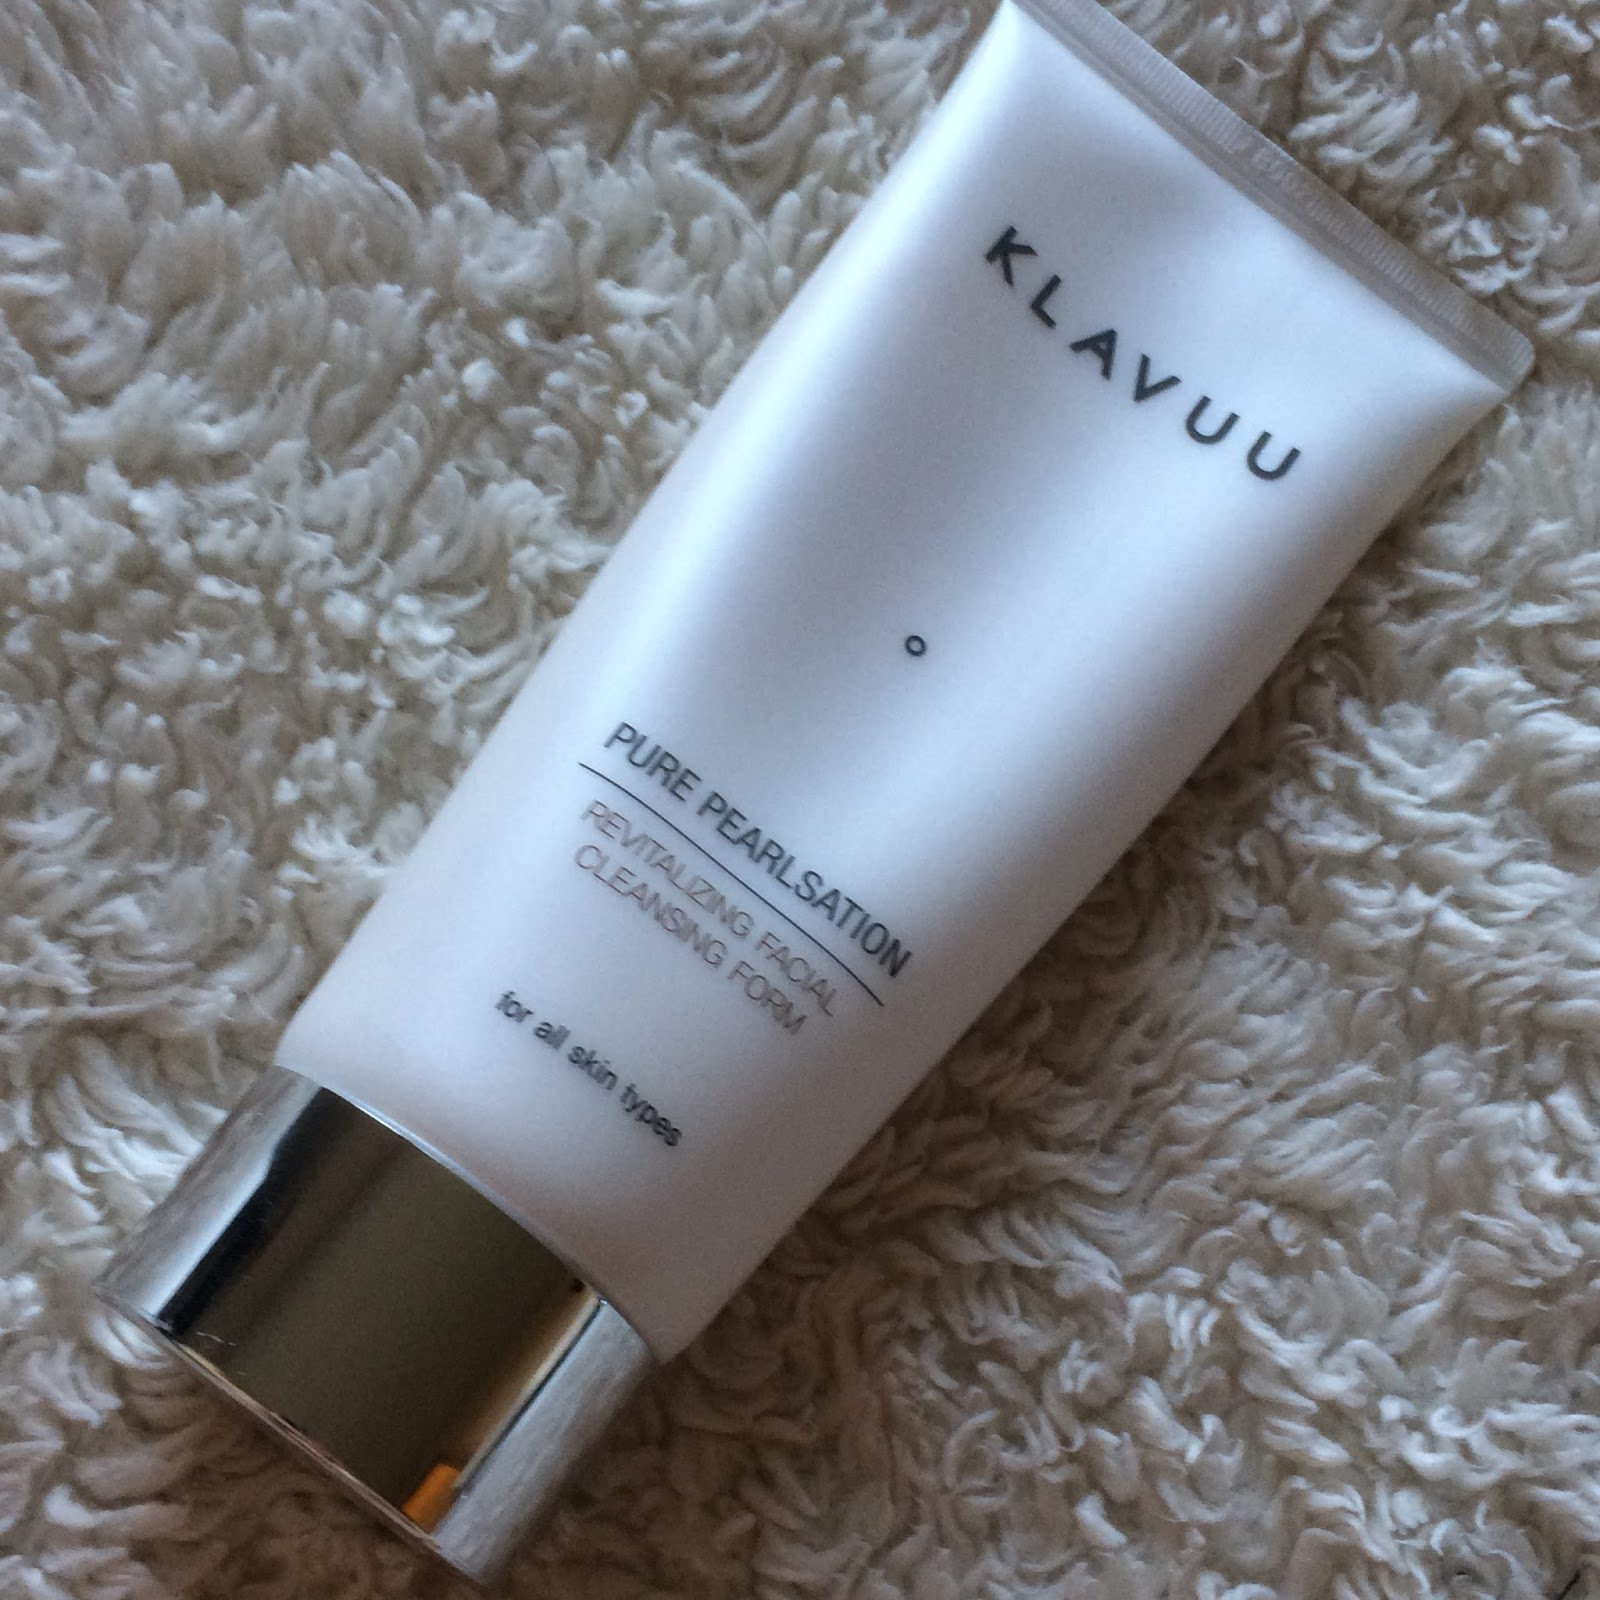 Half Past October: #Klavuu Pearlsation Lineup Review from